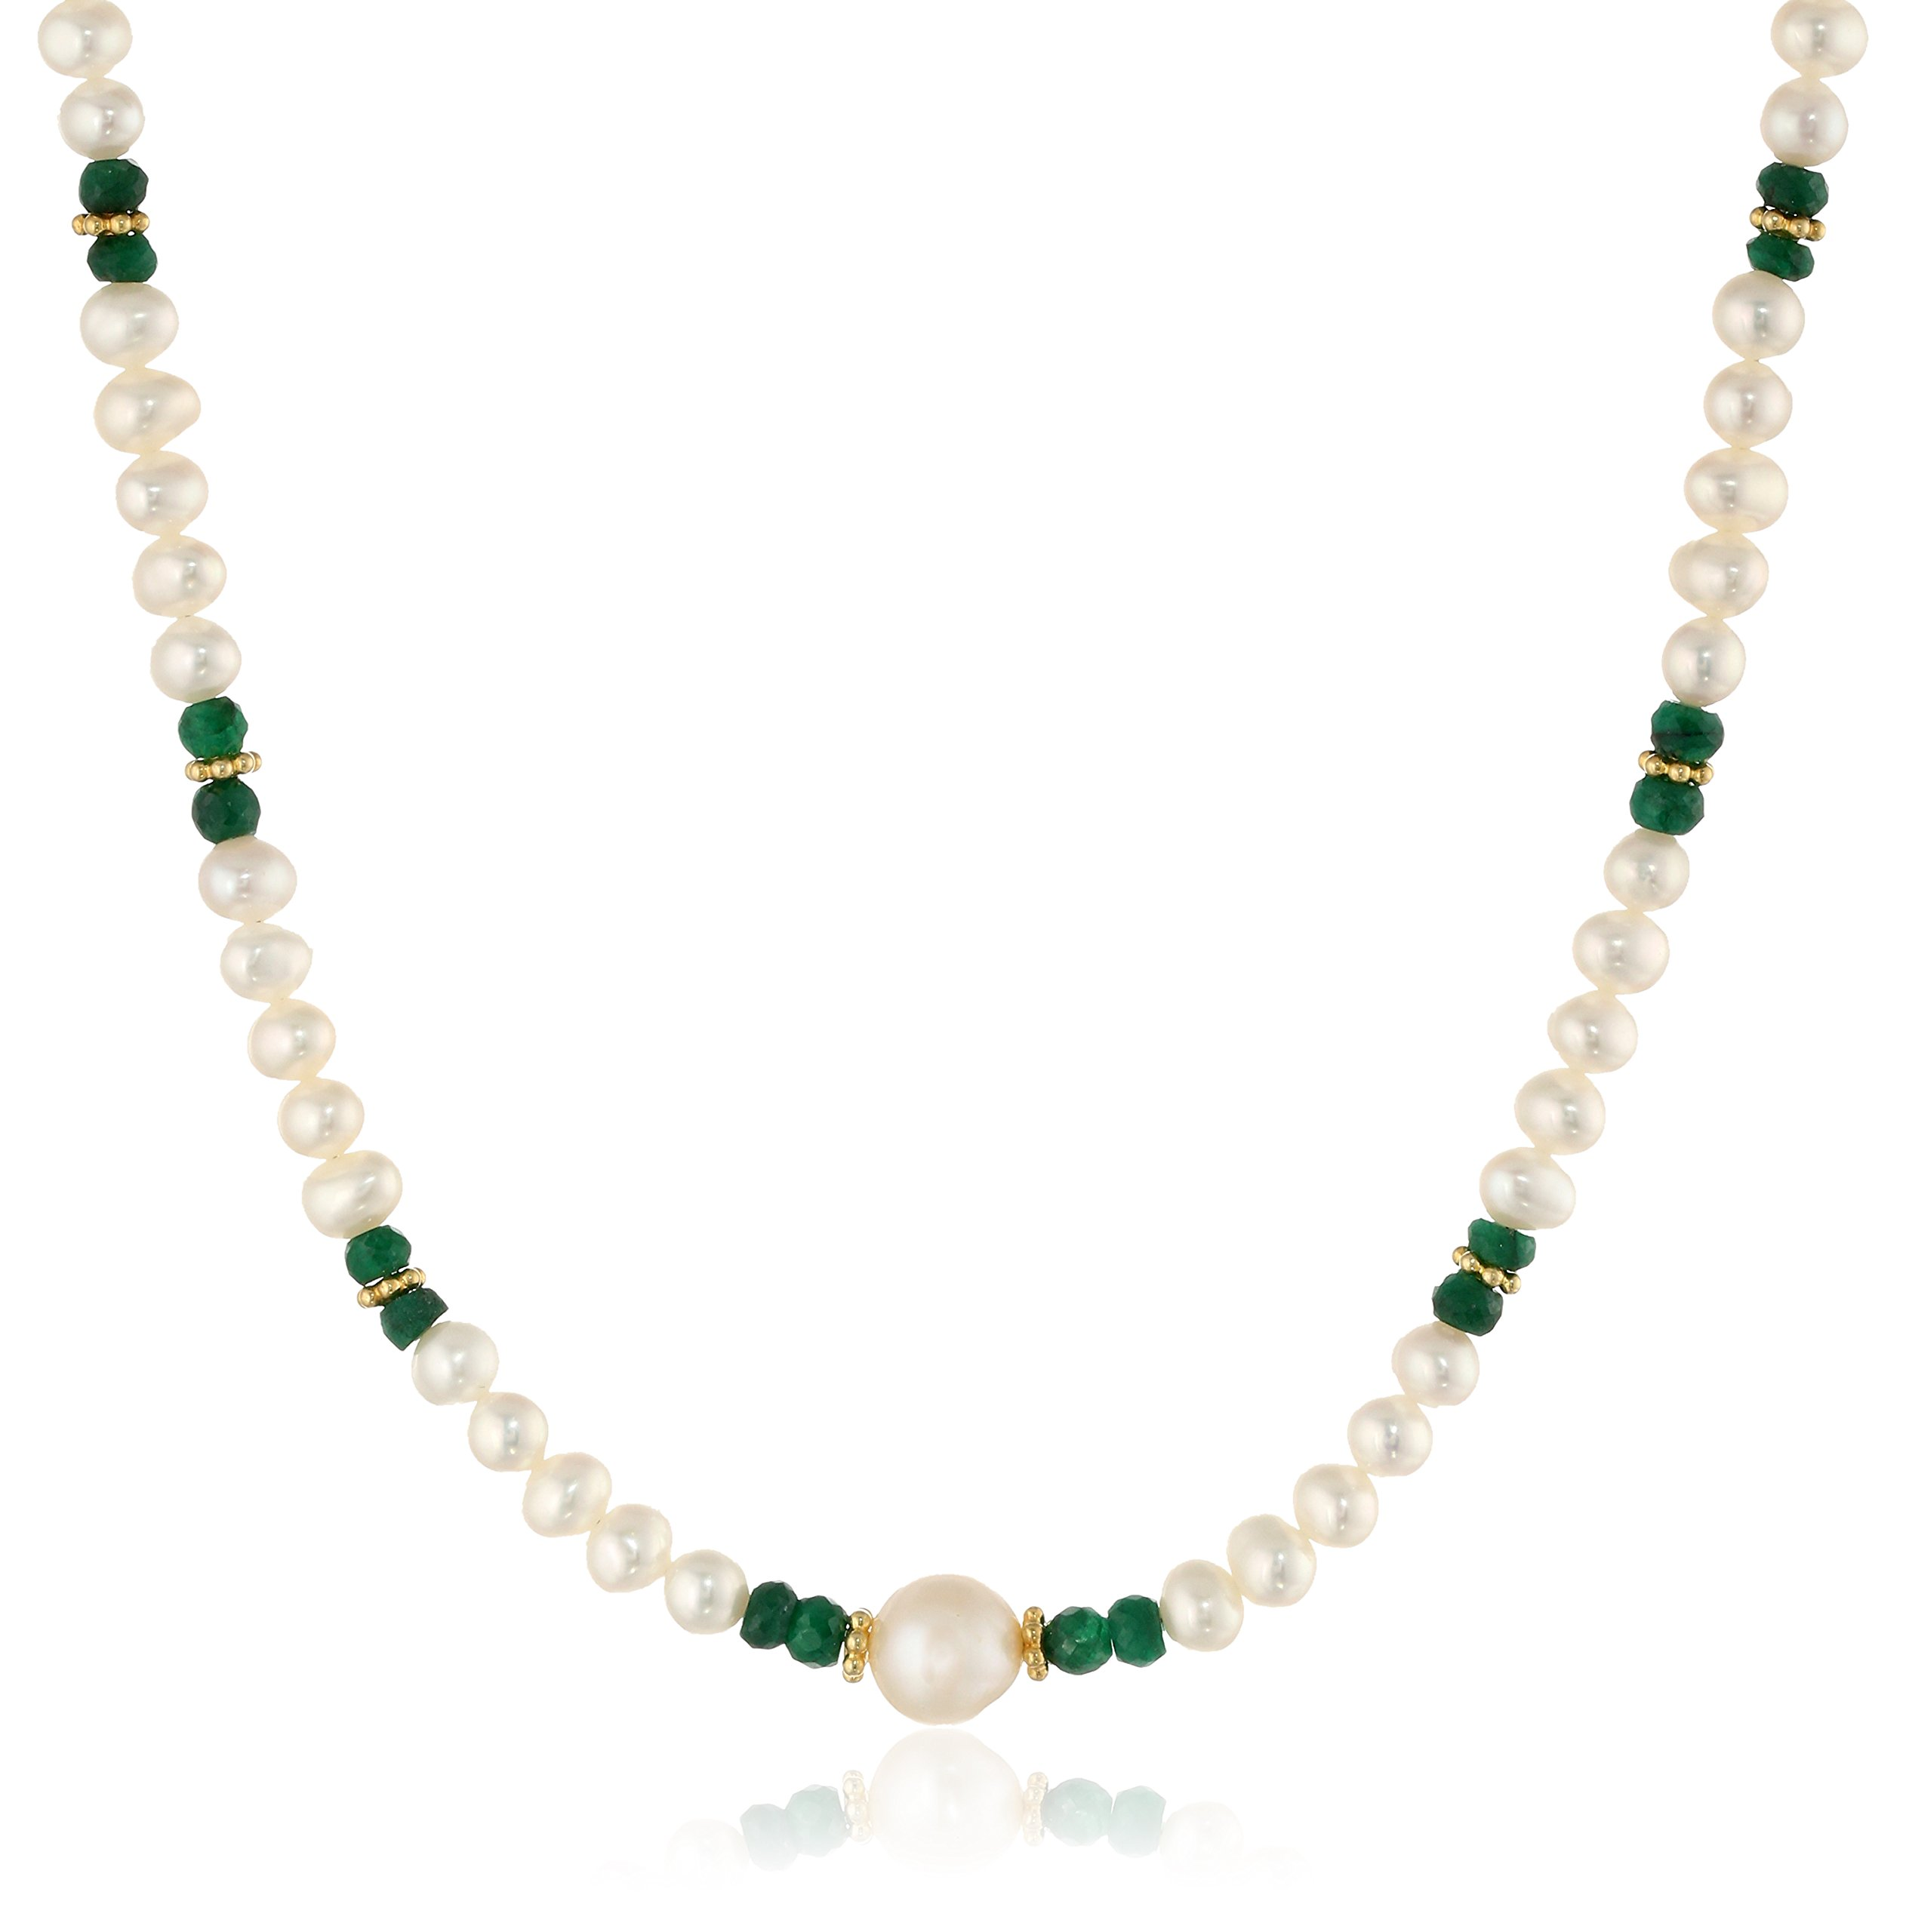 Dyed Green Corundum and Gold Plated Silver Accents with White Potato Freshwater Cultured Pearl Necklace, 18''